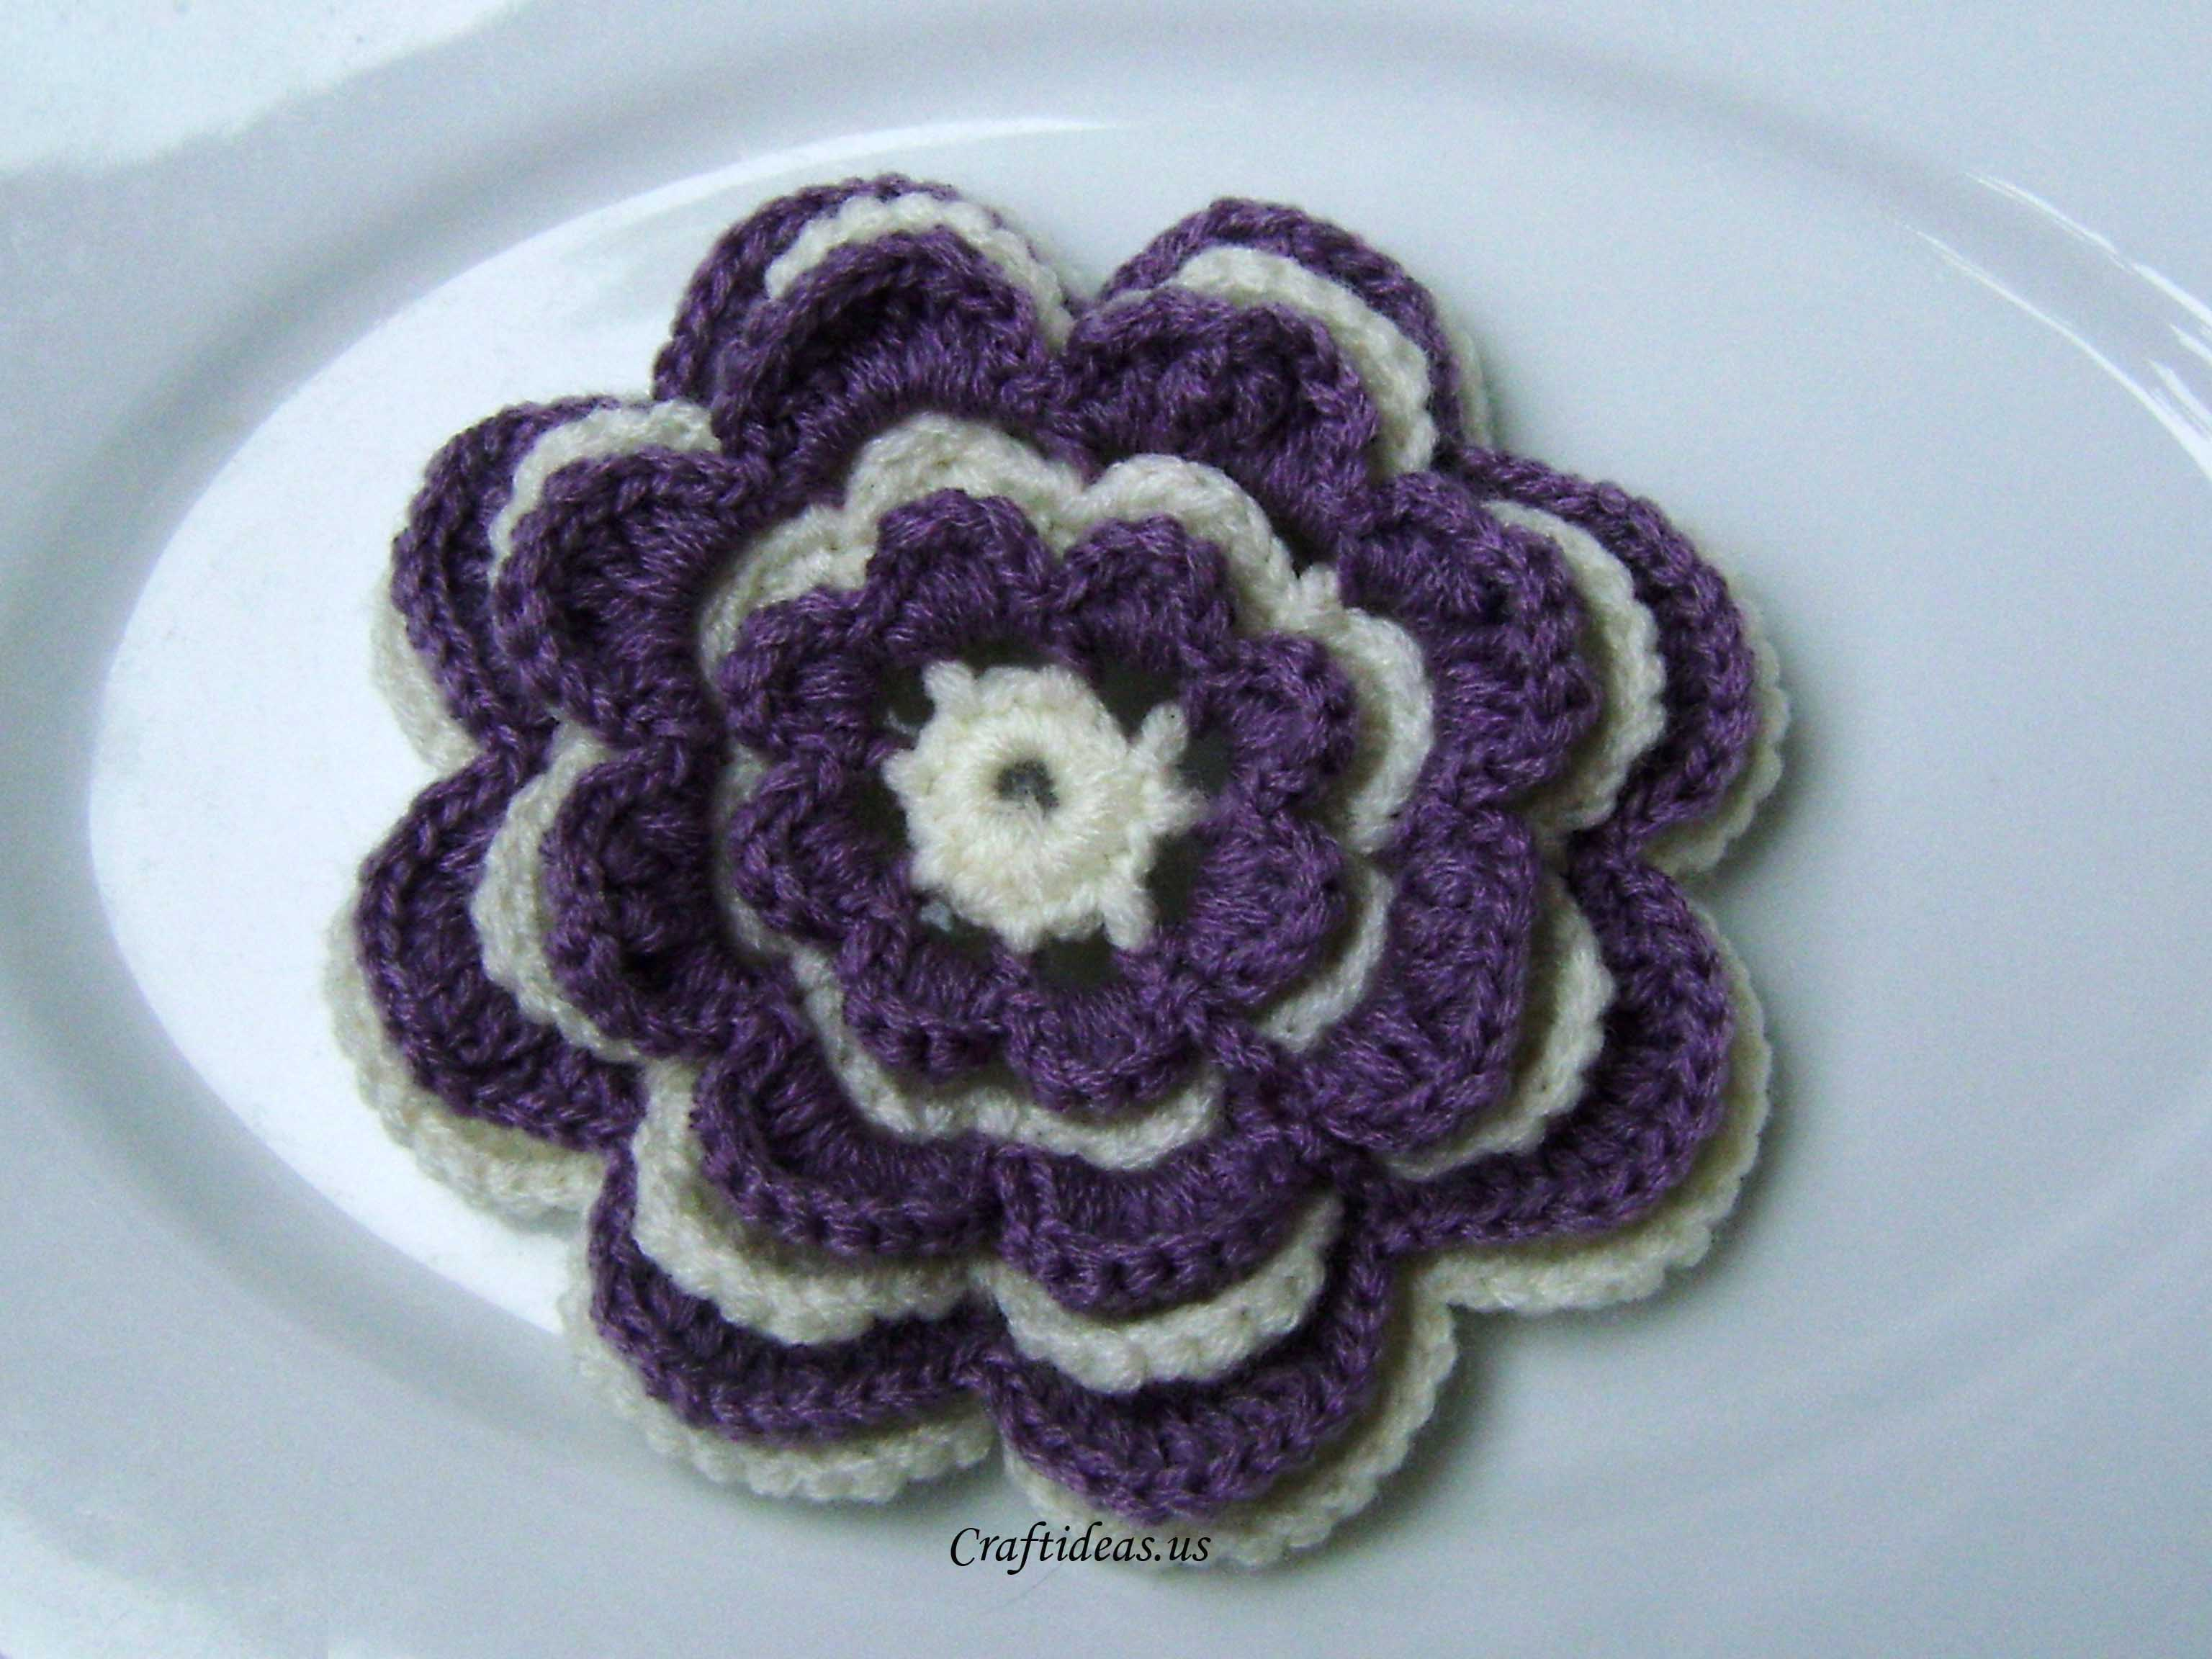 Crochet Tutorial : Crochet flower tutorial - Craft Ideas